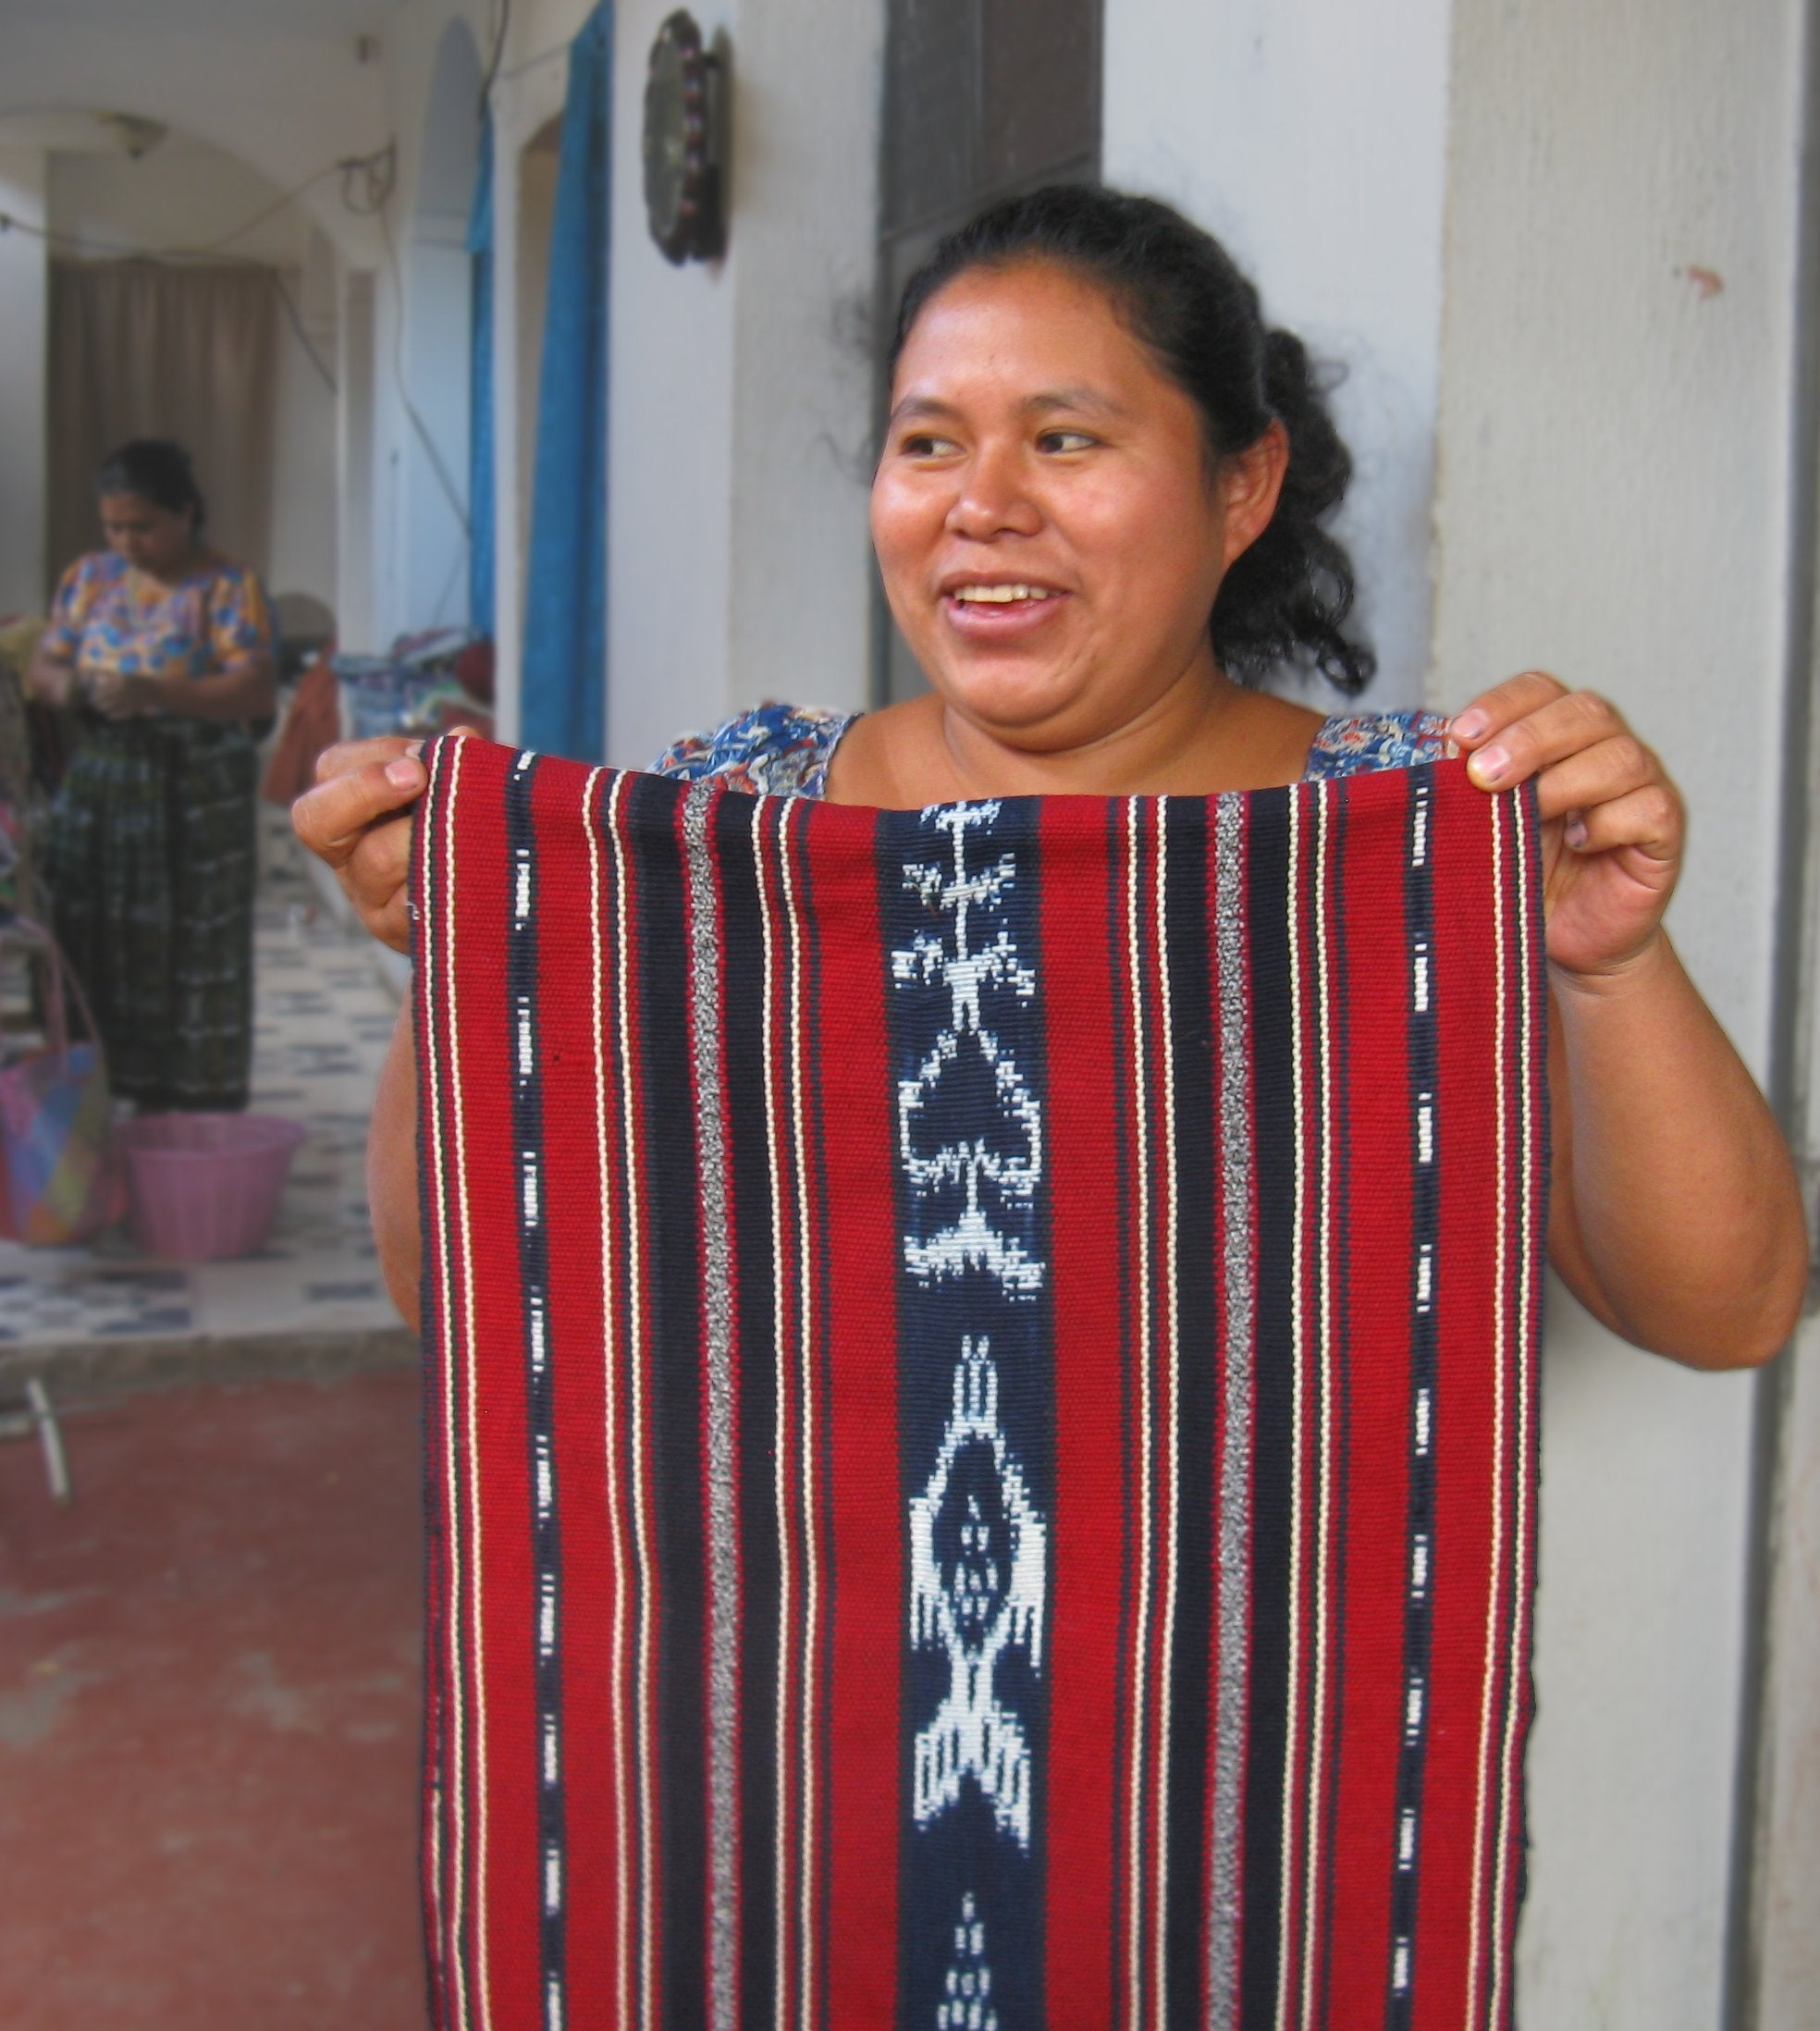 Mayan Master weaver Isabel Pérez Mendoza holding one panel of a backstrap loom woven bedspread